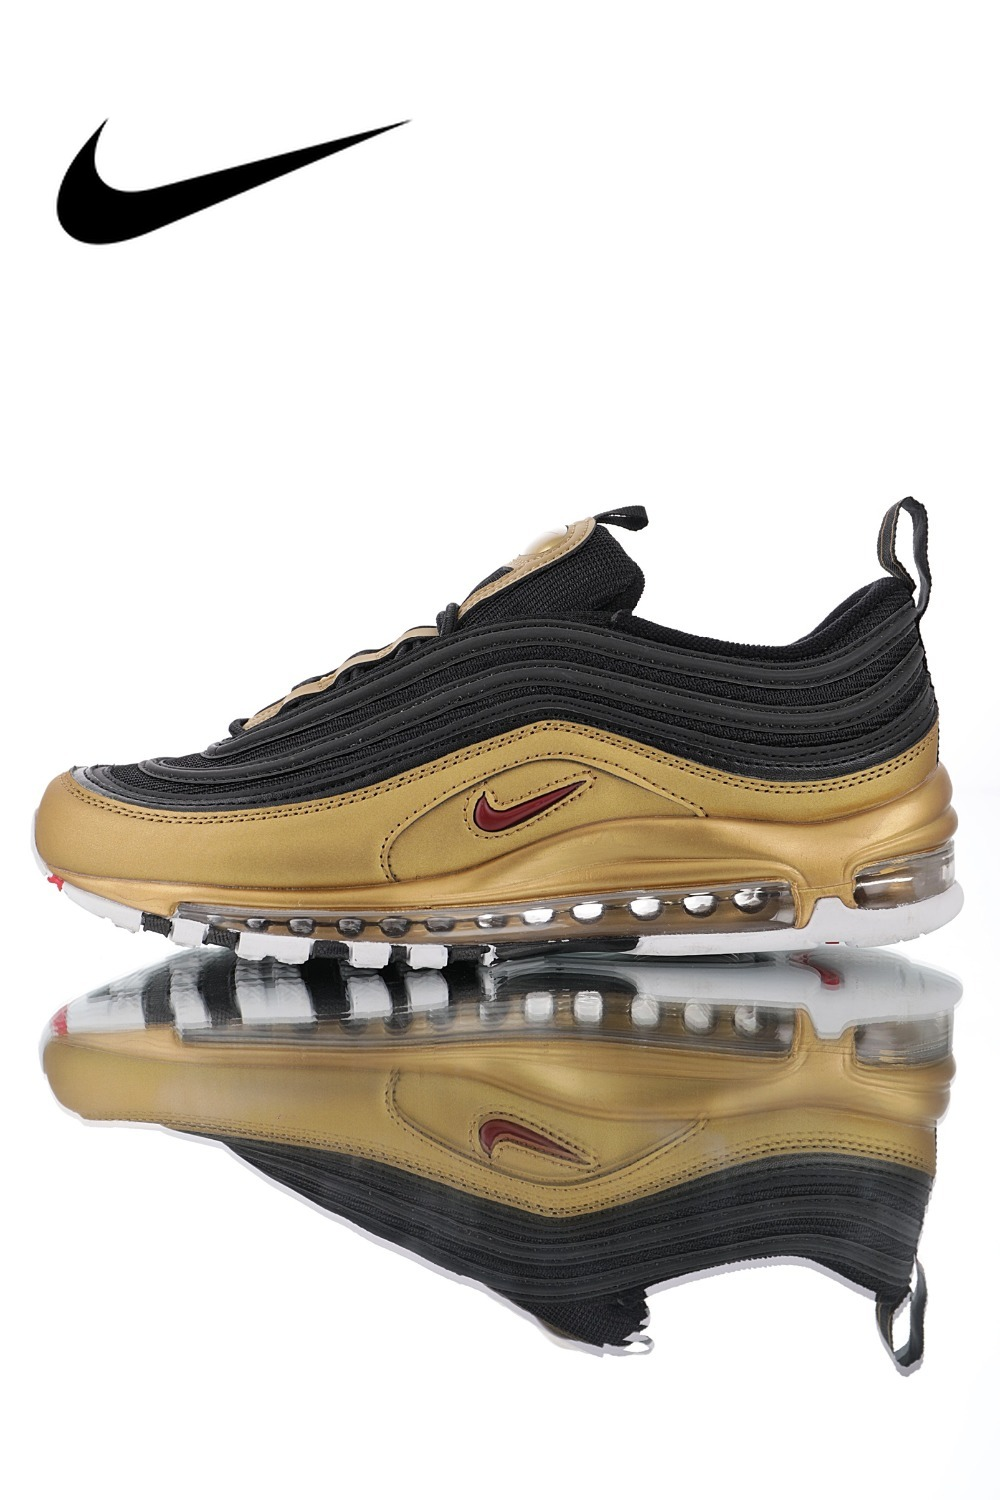 Original Authentic Nike Air Max 97 QS 2017 RELEASE Men's Running Shoes Fashion Outdoor Sports Designer Sports Shoes AT5458-002